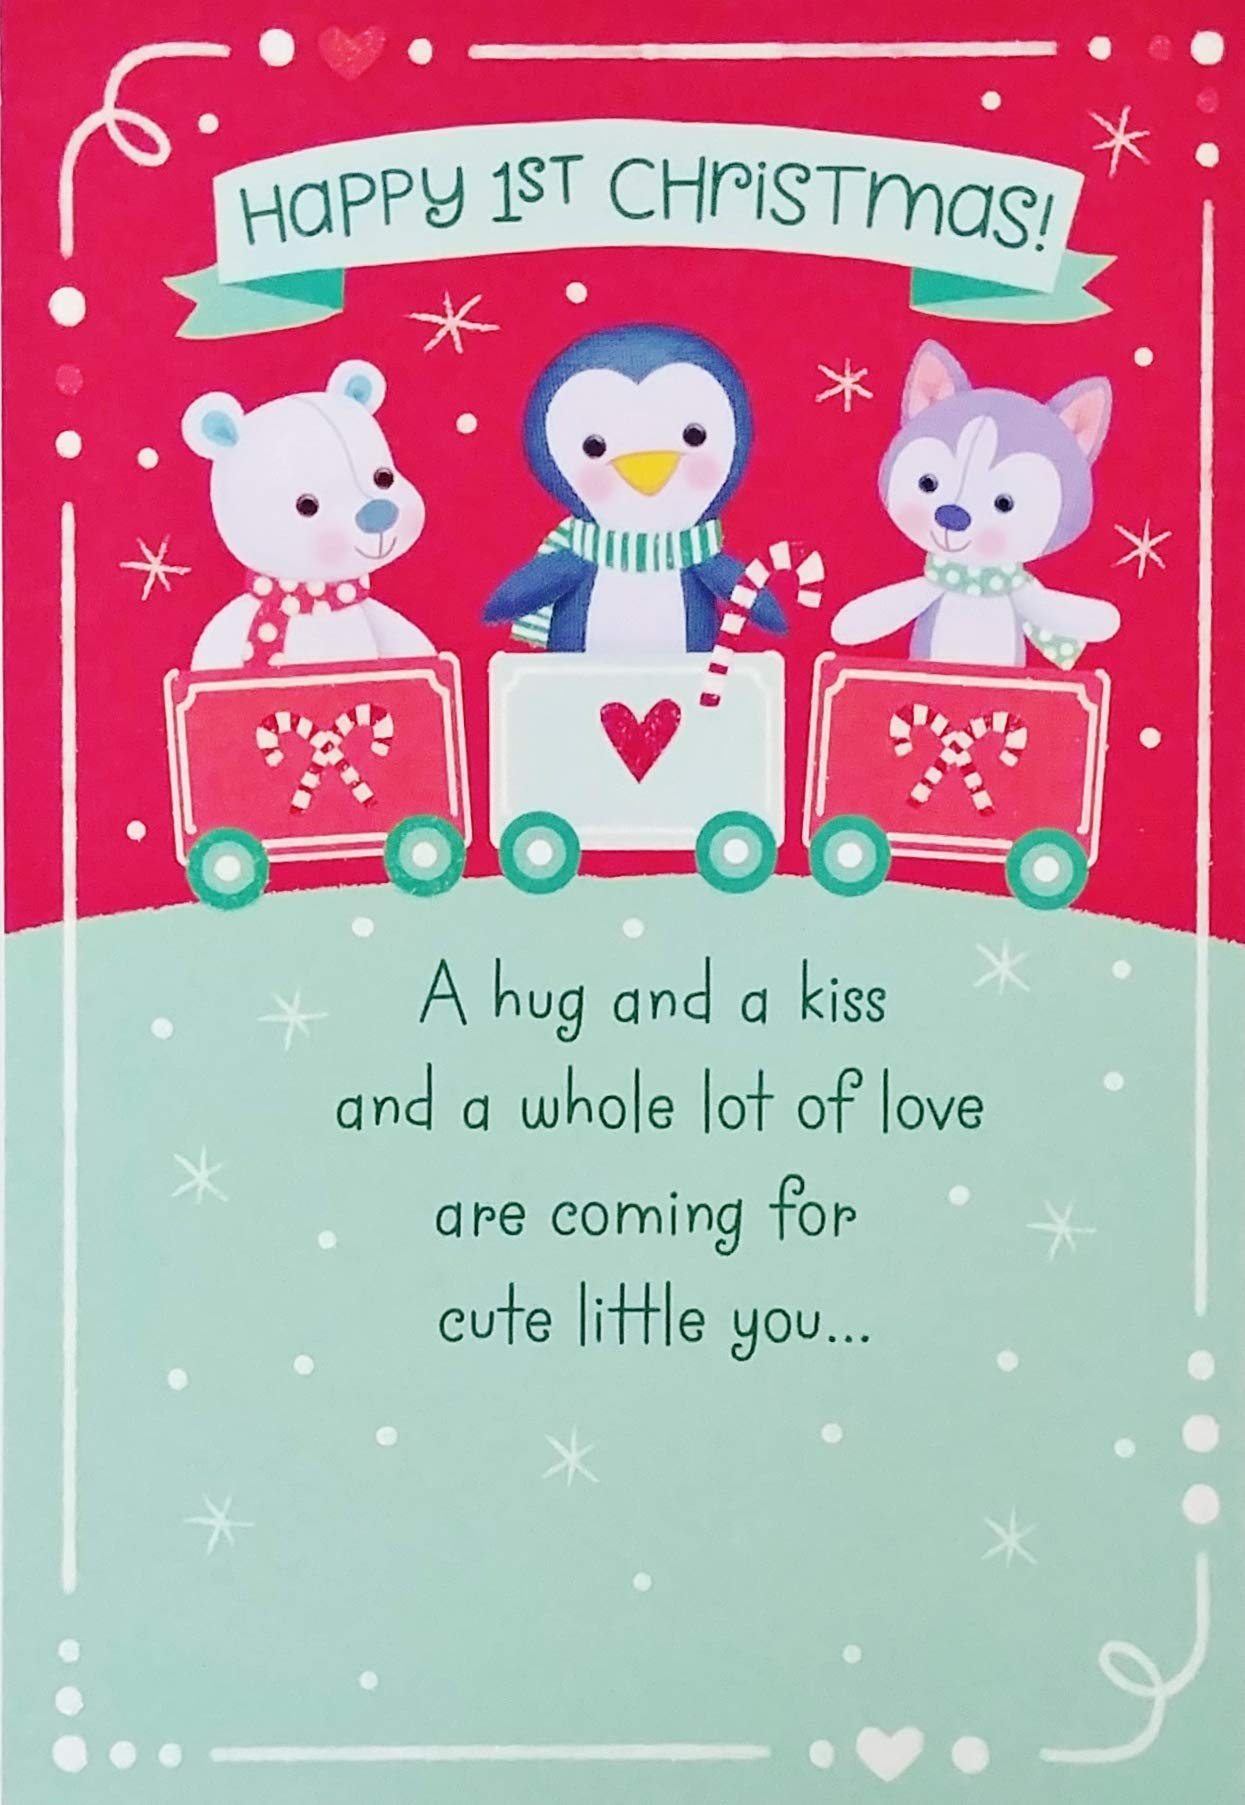 Happy 1st First Christmas Greeting Card Milestone Holiday Infant Young Baby Child - A Hug and A Kiss and a Whole Lot of Love Are Coming For Cute Little You